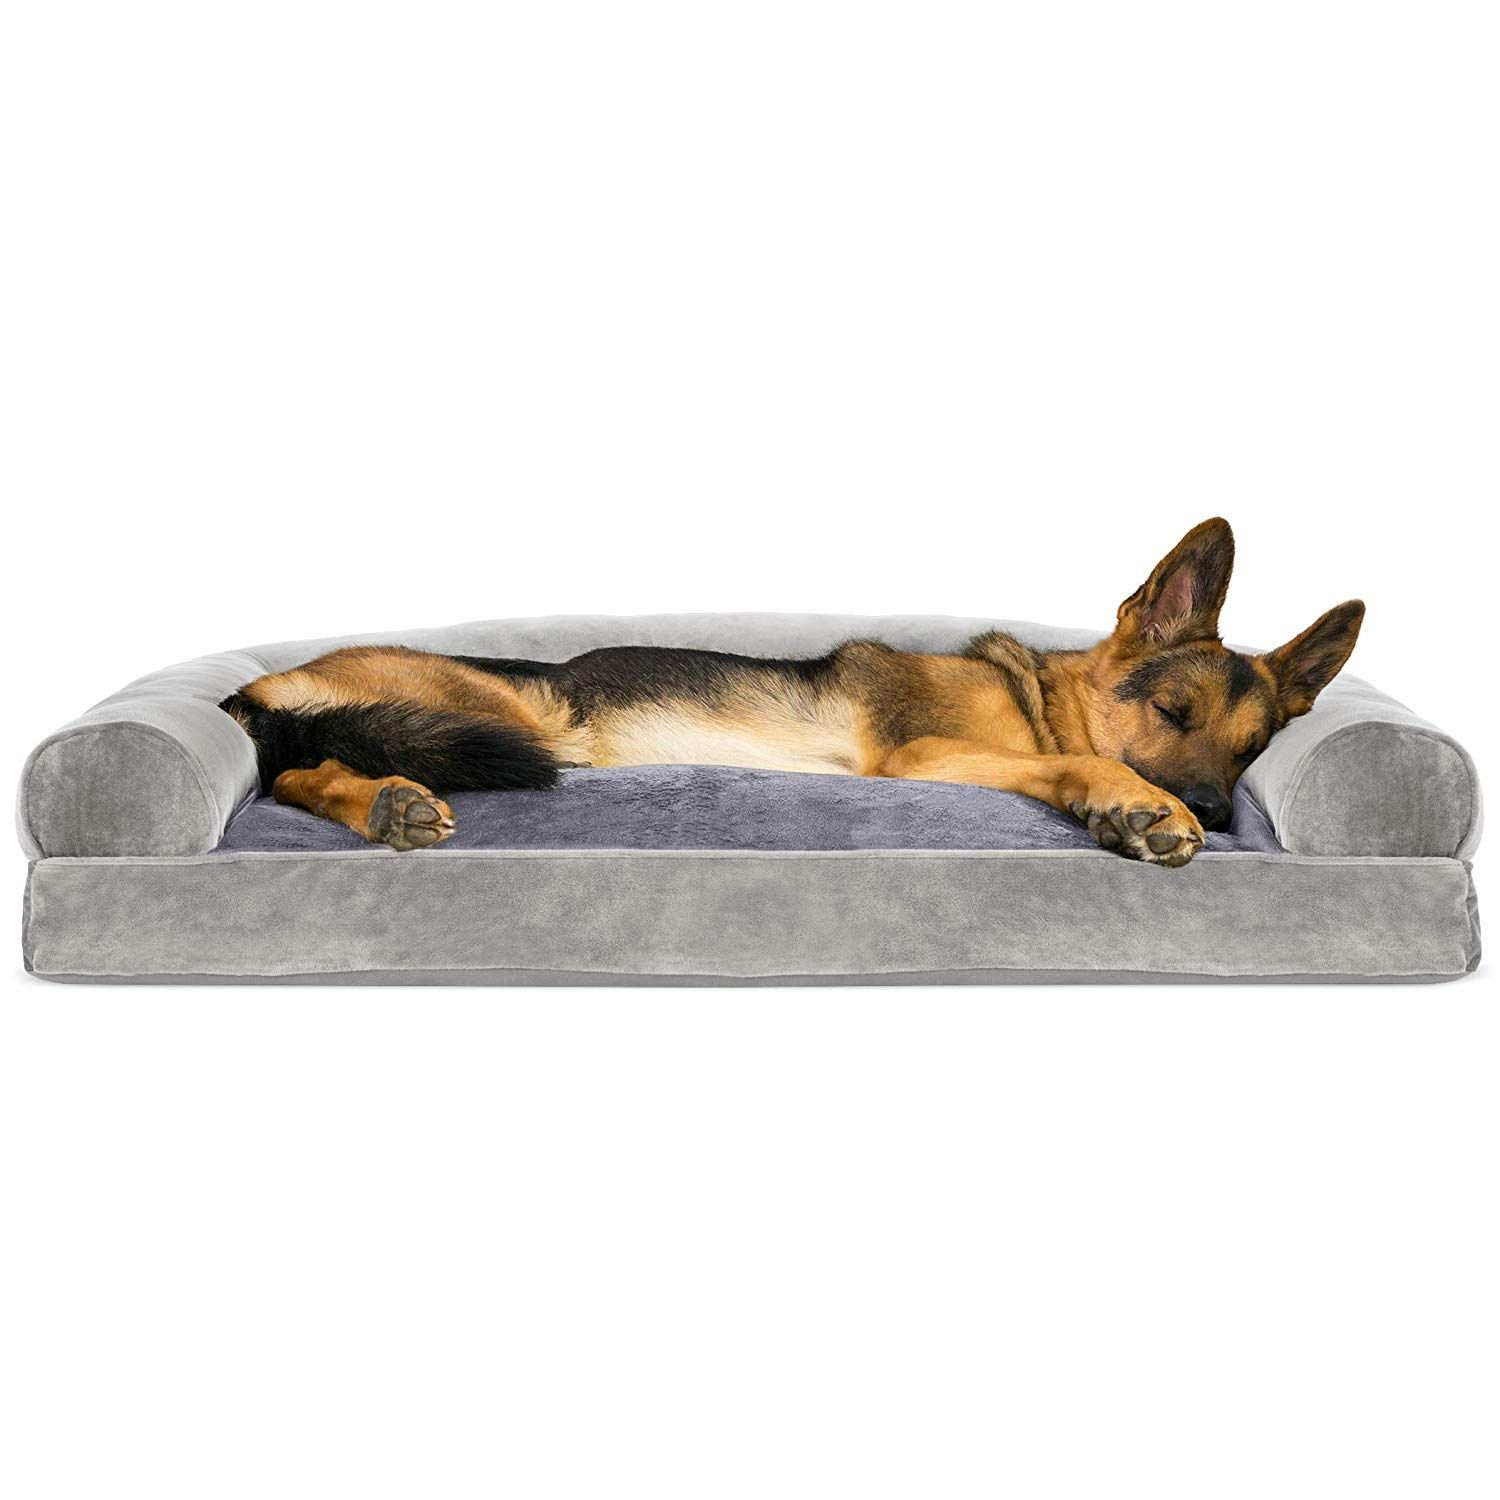 Furhaven Pet Dog Bed Faux Fur Velvet Pillow Cushion Traditional Sofa Style Living Room Couch Pe Dog Pet Beds Animal Pillows Dog Pillow Bed